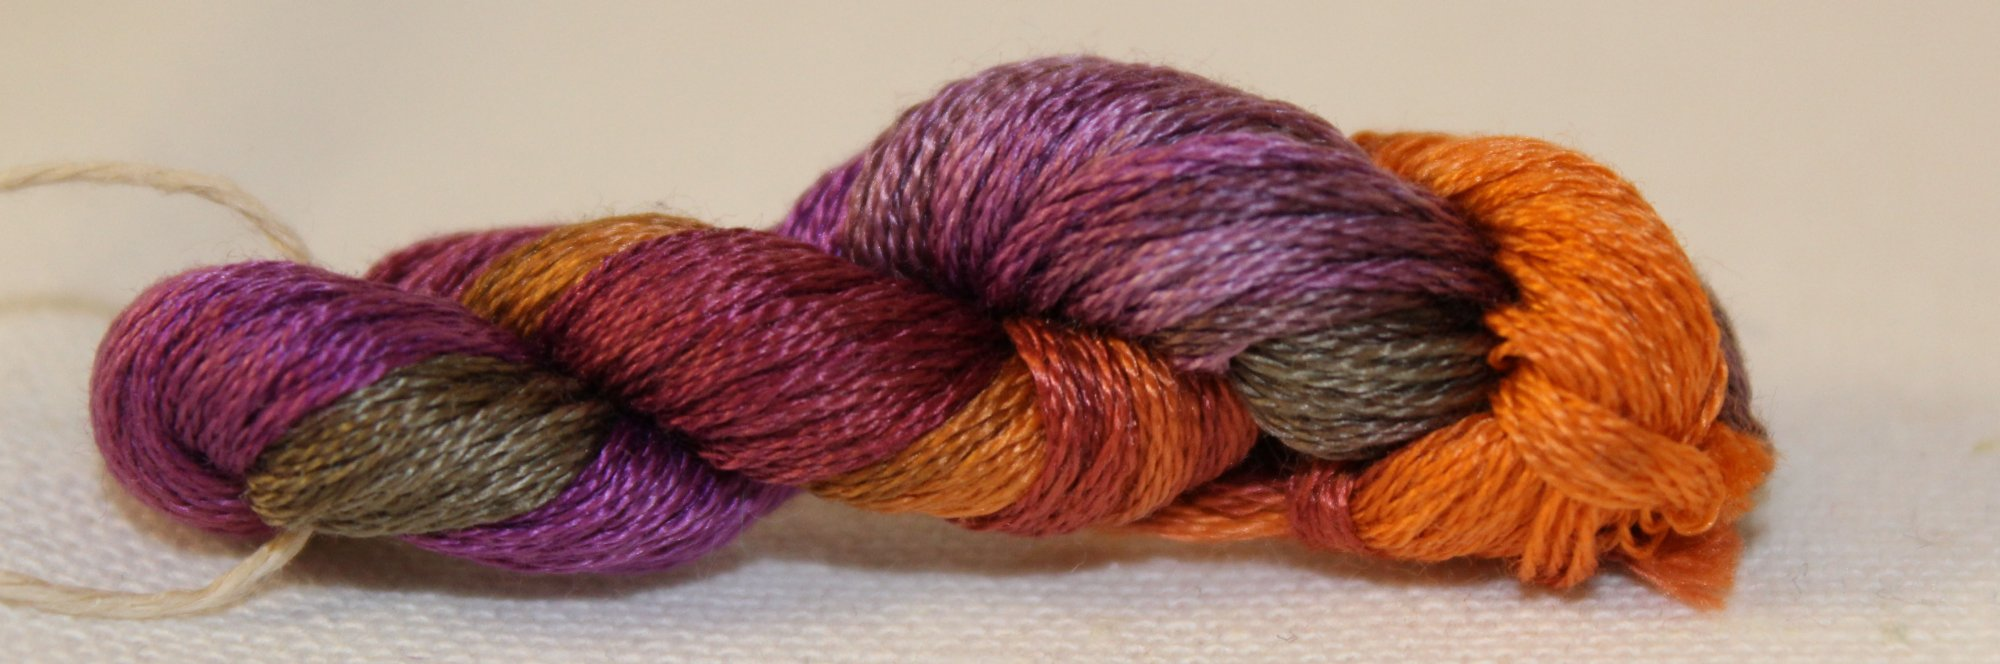 Thistles- Hand-Dyed Embroidery Floss